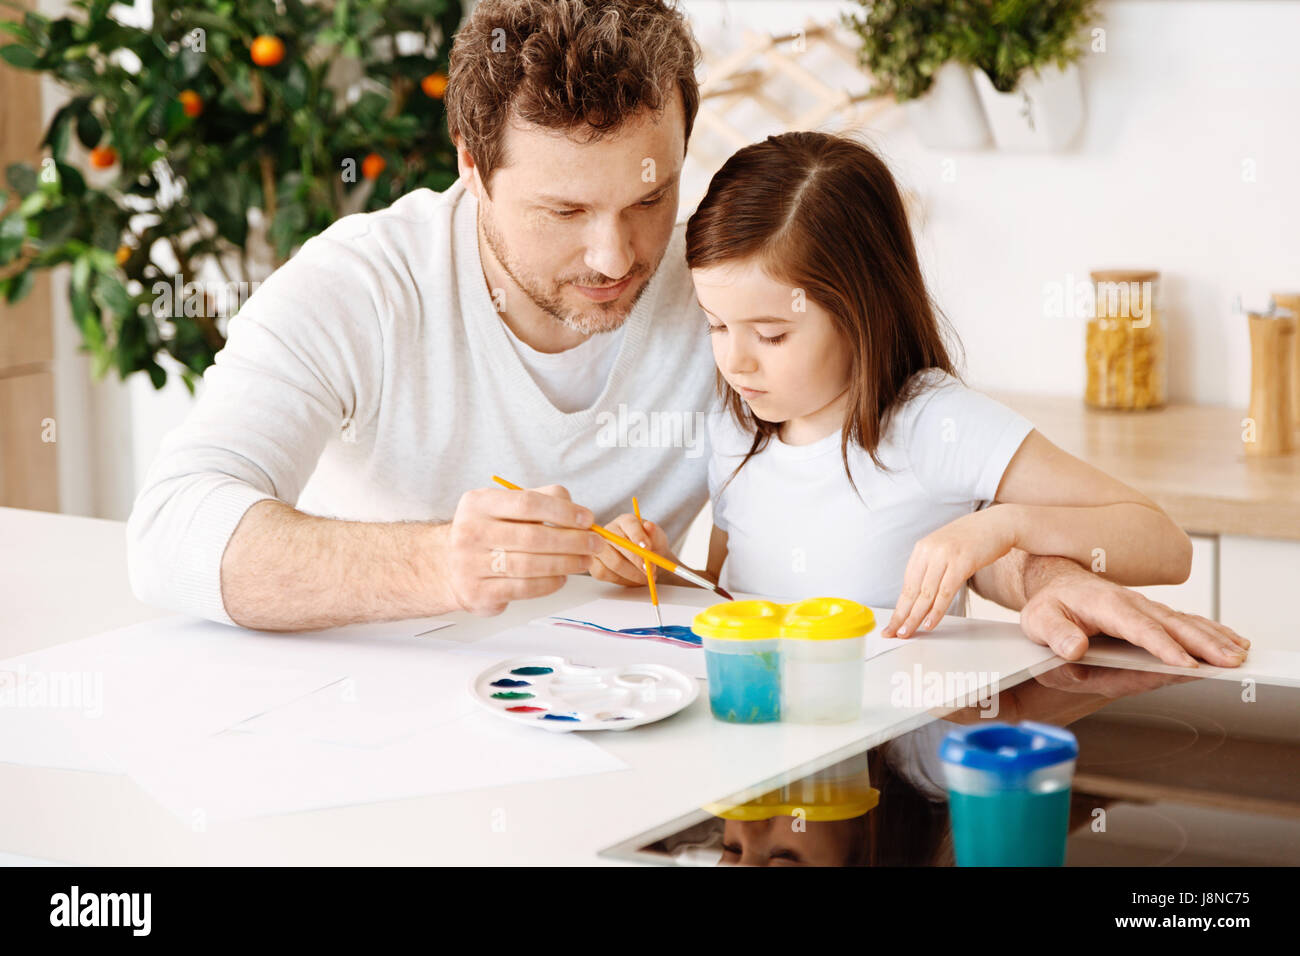 Treasured moments. Inspired loving single-parent family enjoying themselves while painting together one picture - Stock Image